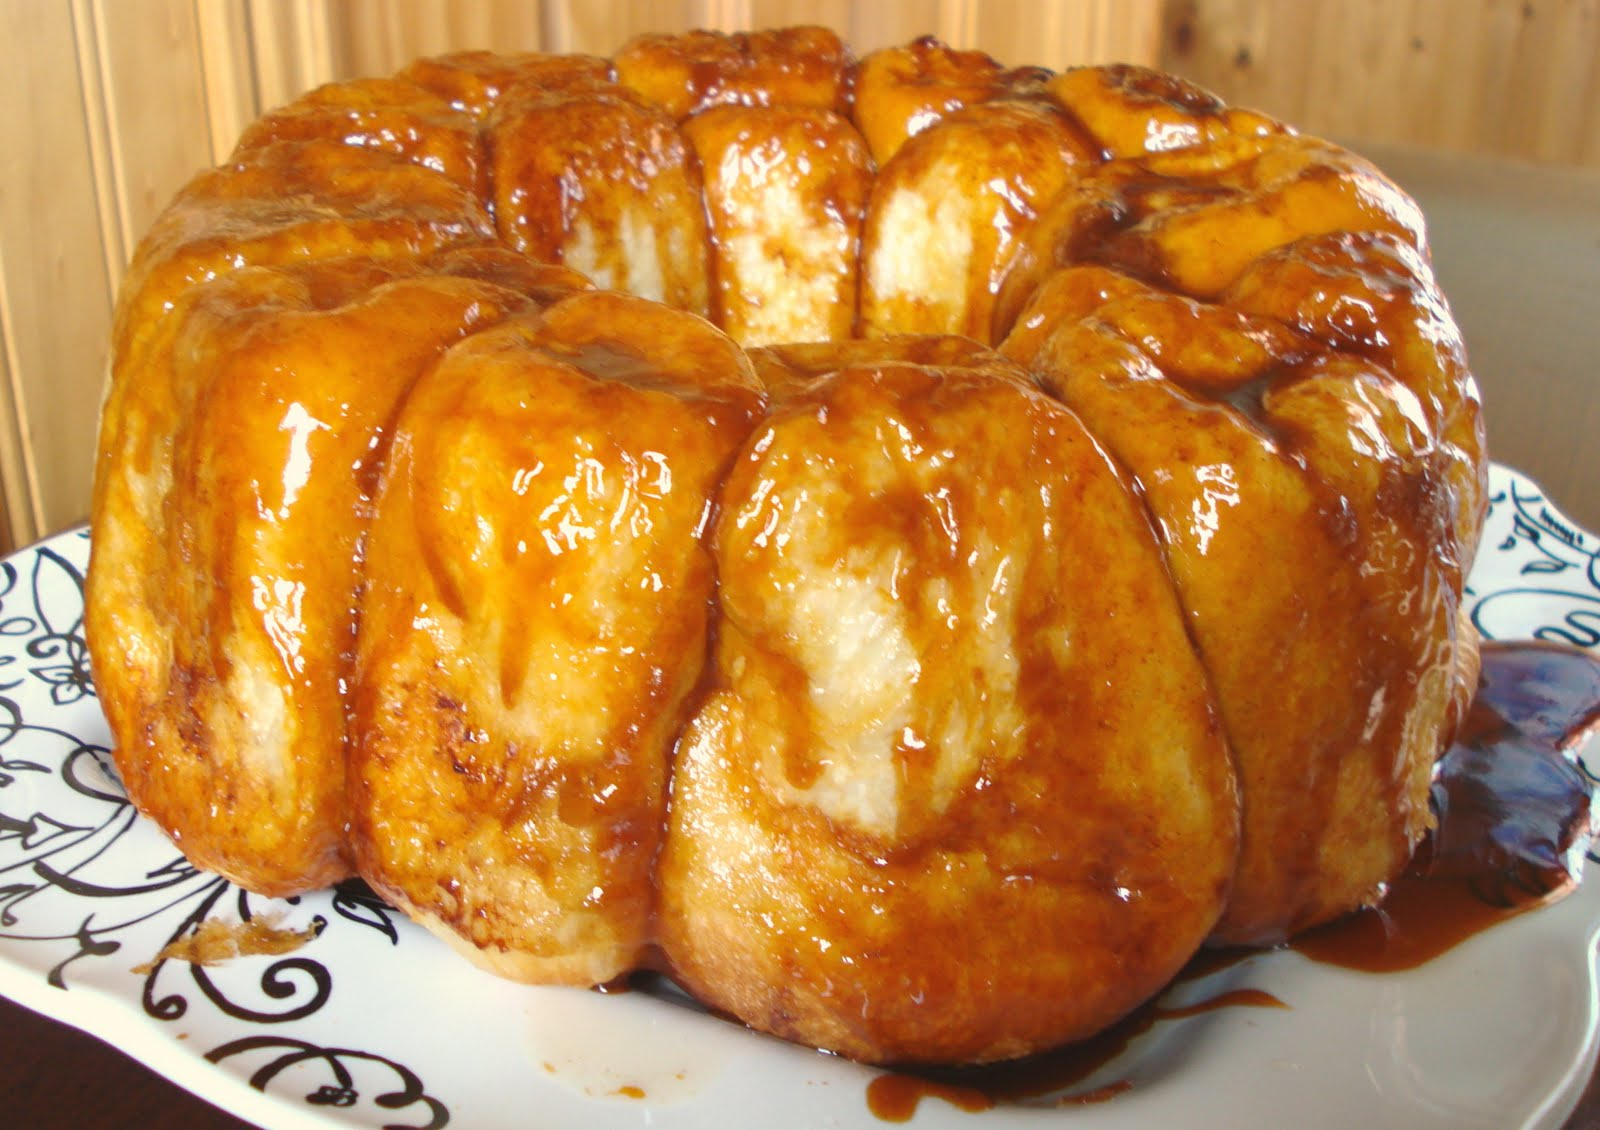 ... 344: Where We Learned to Live, Love, and Cook: Overnight Sticky Buns